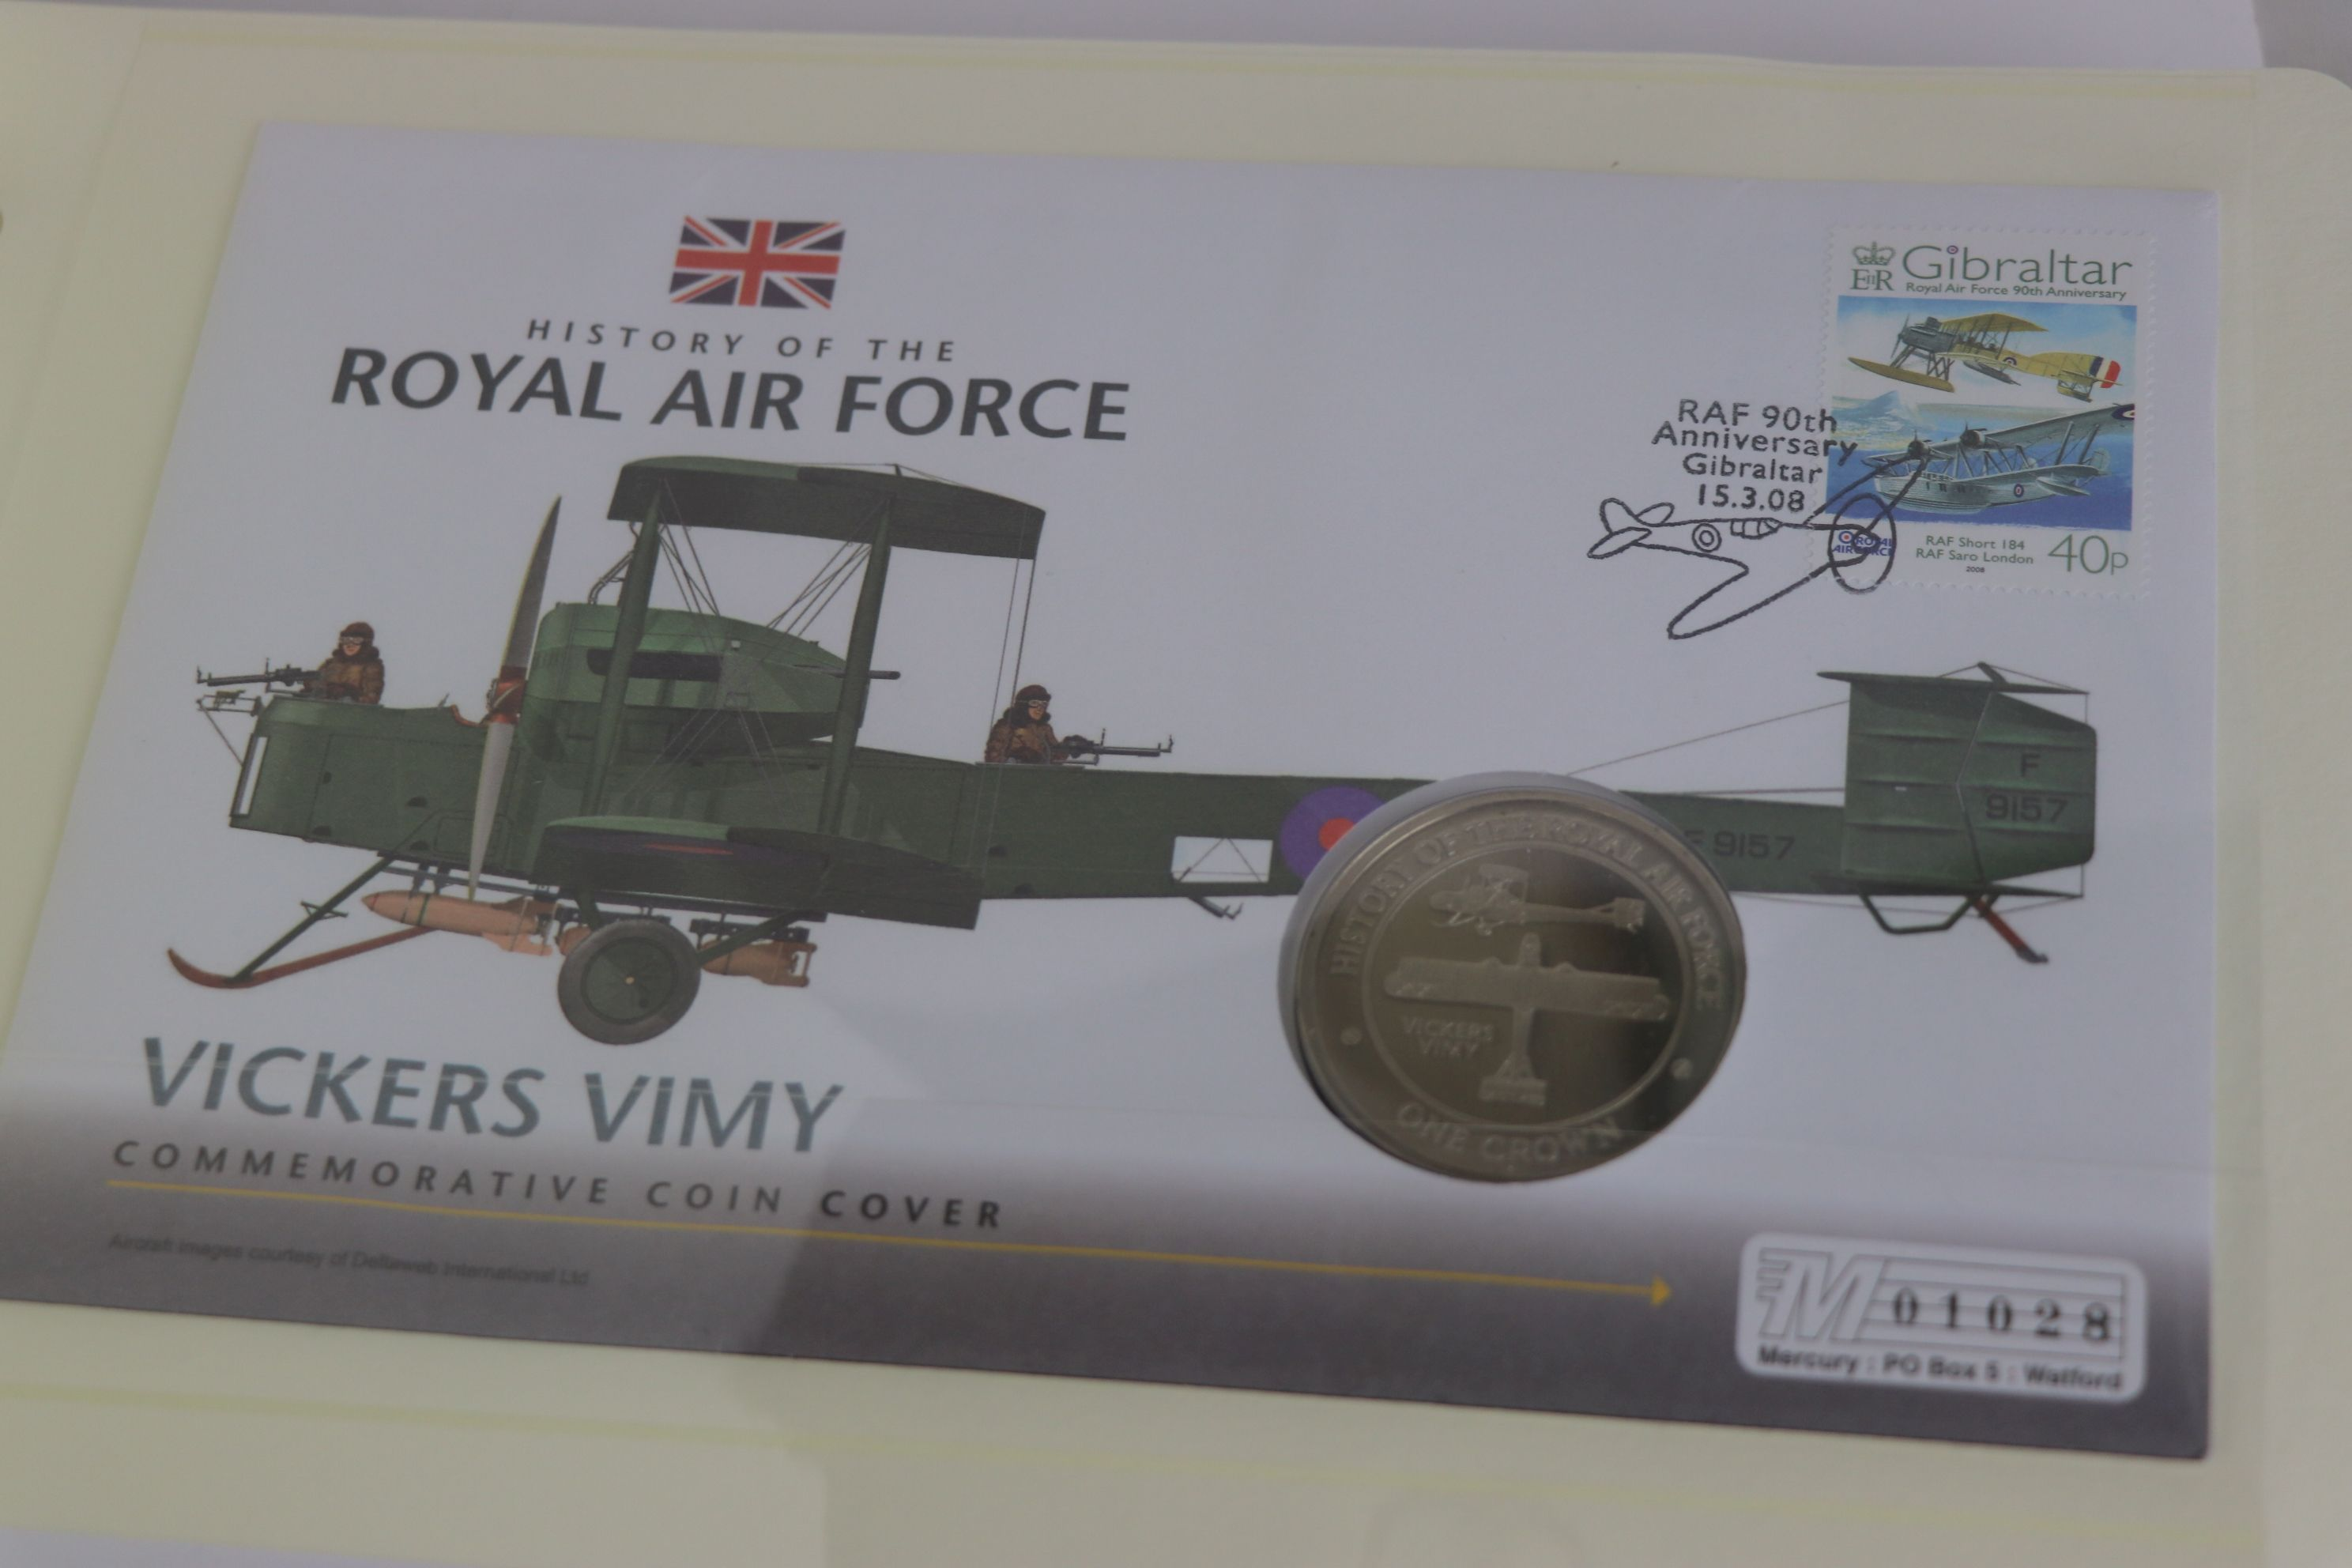 A limited edition Westminster Mint History of the Royal Air Force coin and stamp cover collection to - Image 13 of 16